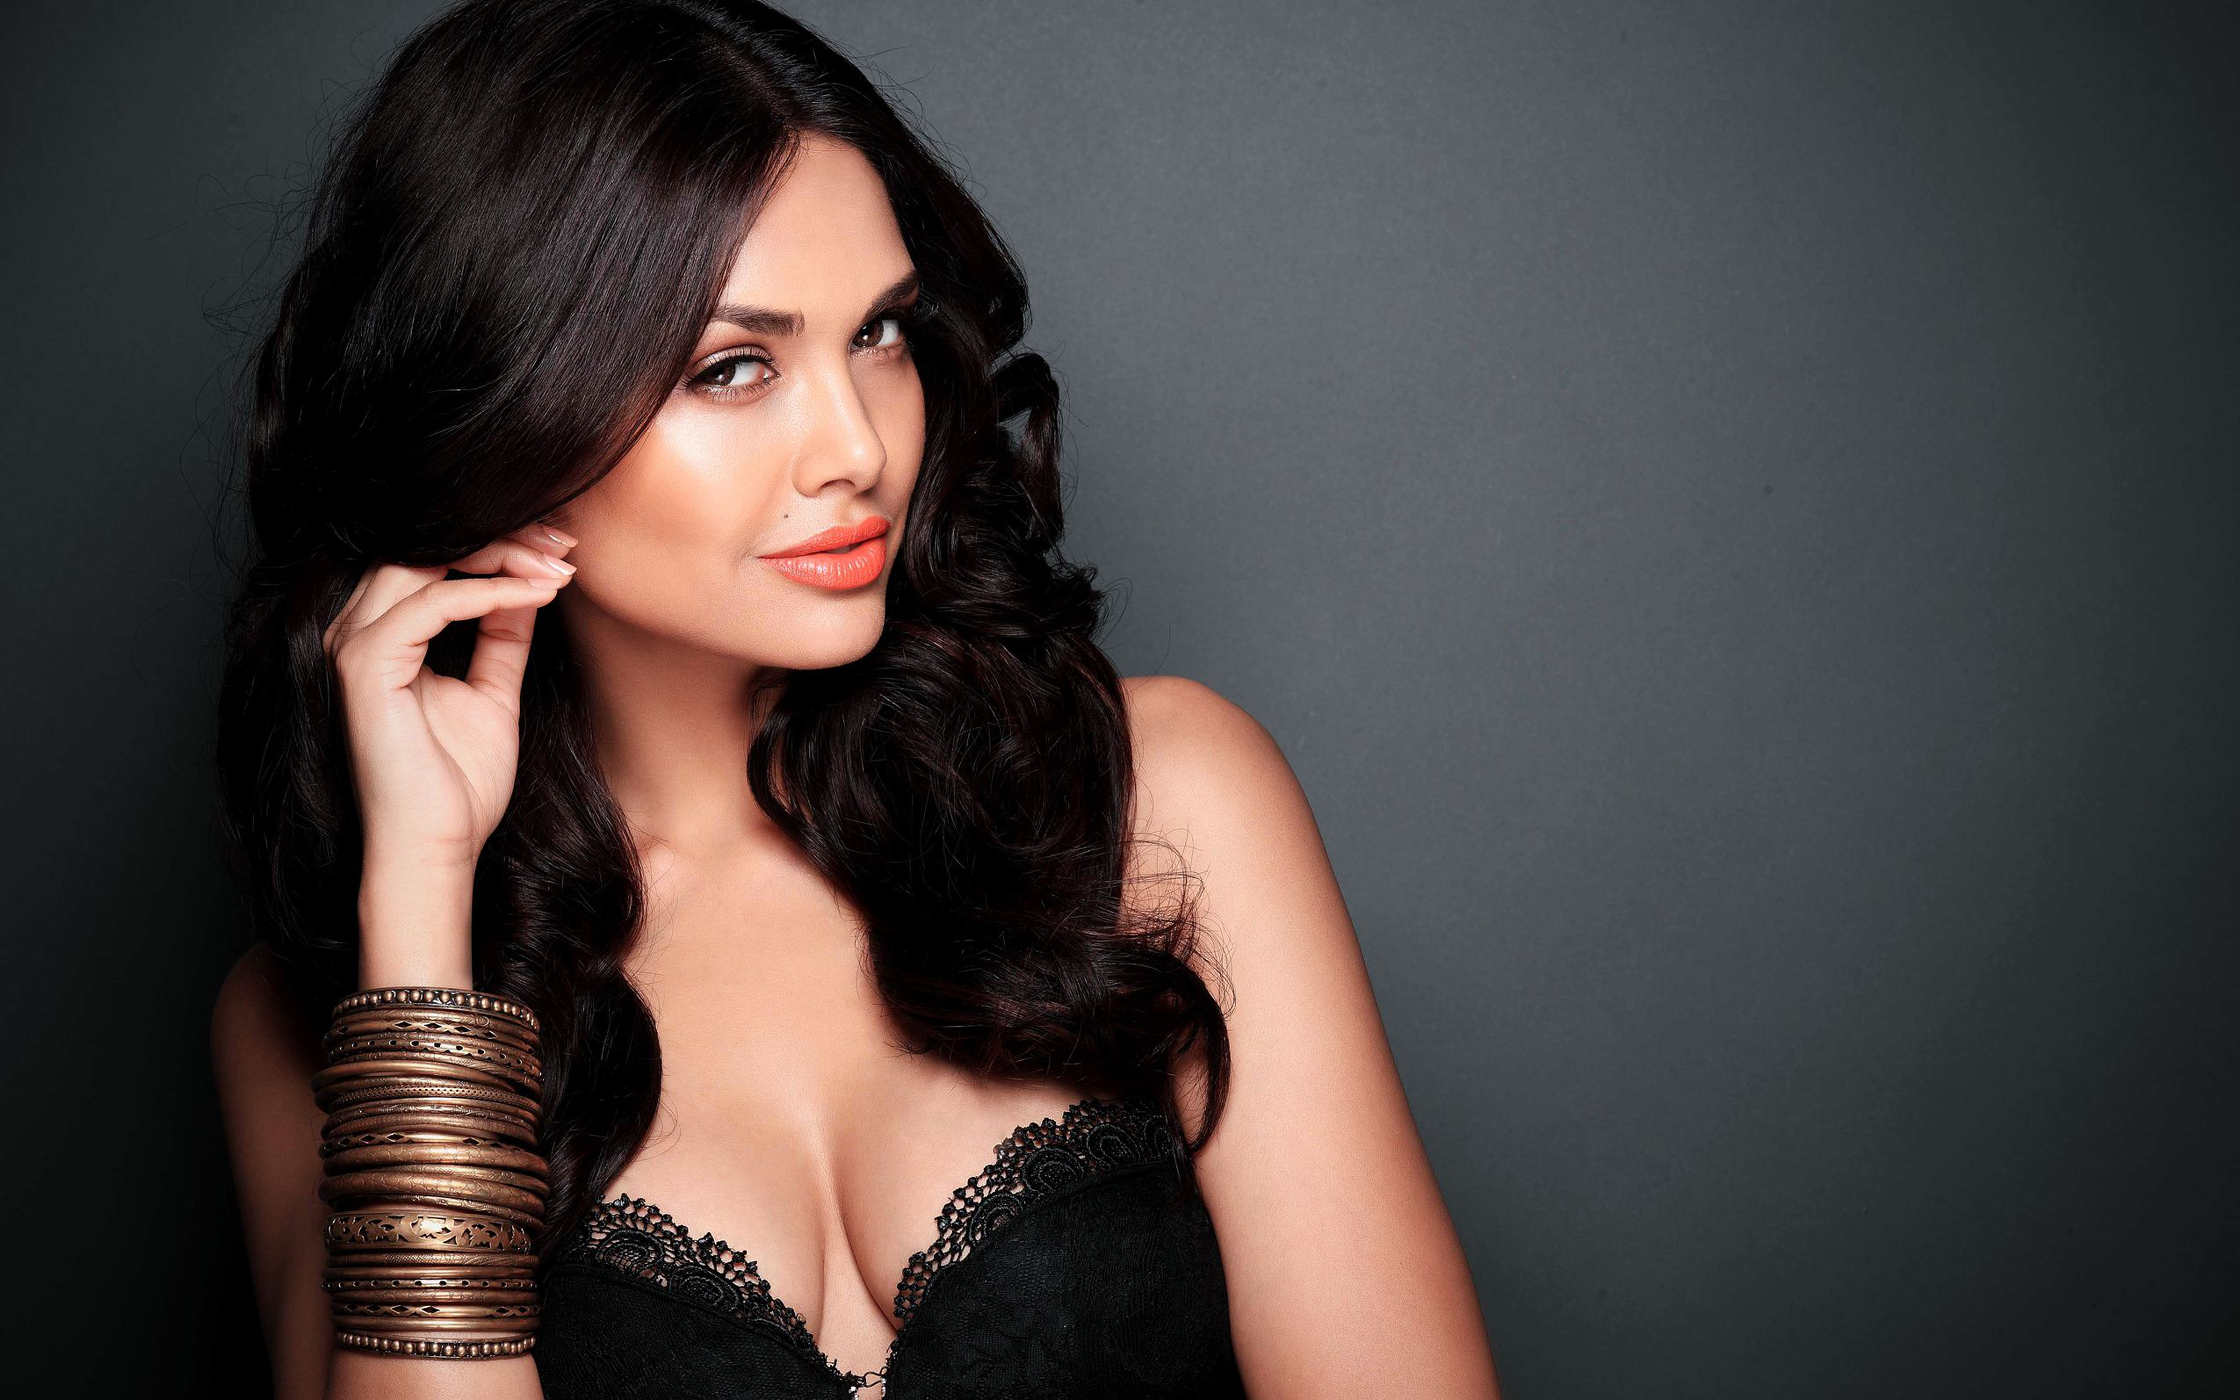 Monster Energy Wallpaper For Phones 3d Sexy Esha Gupta Hot Hd Wallpapers High Quality All Hd